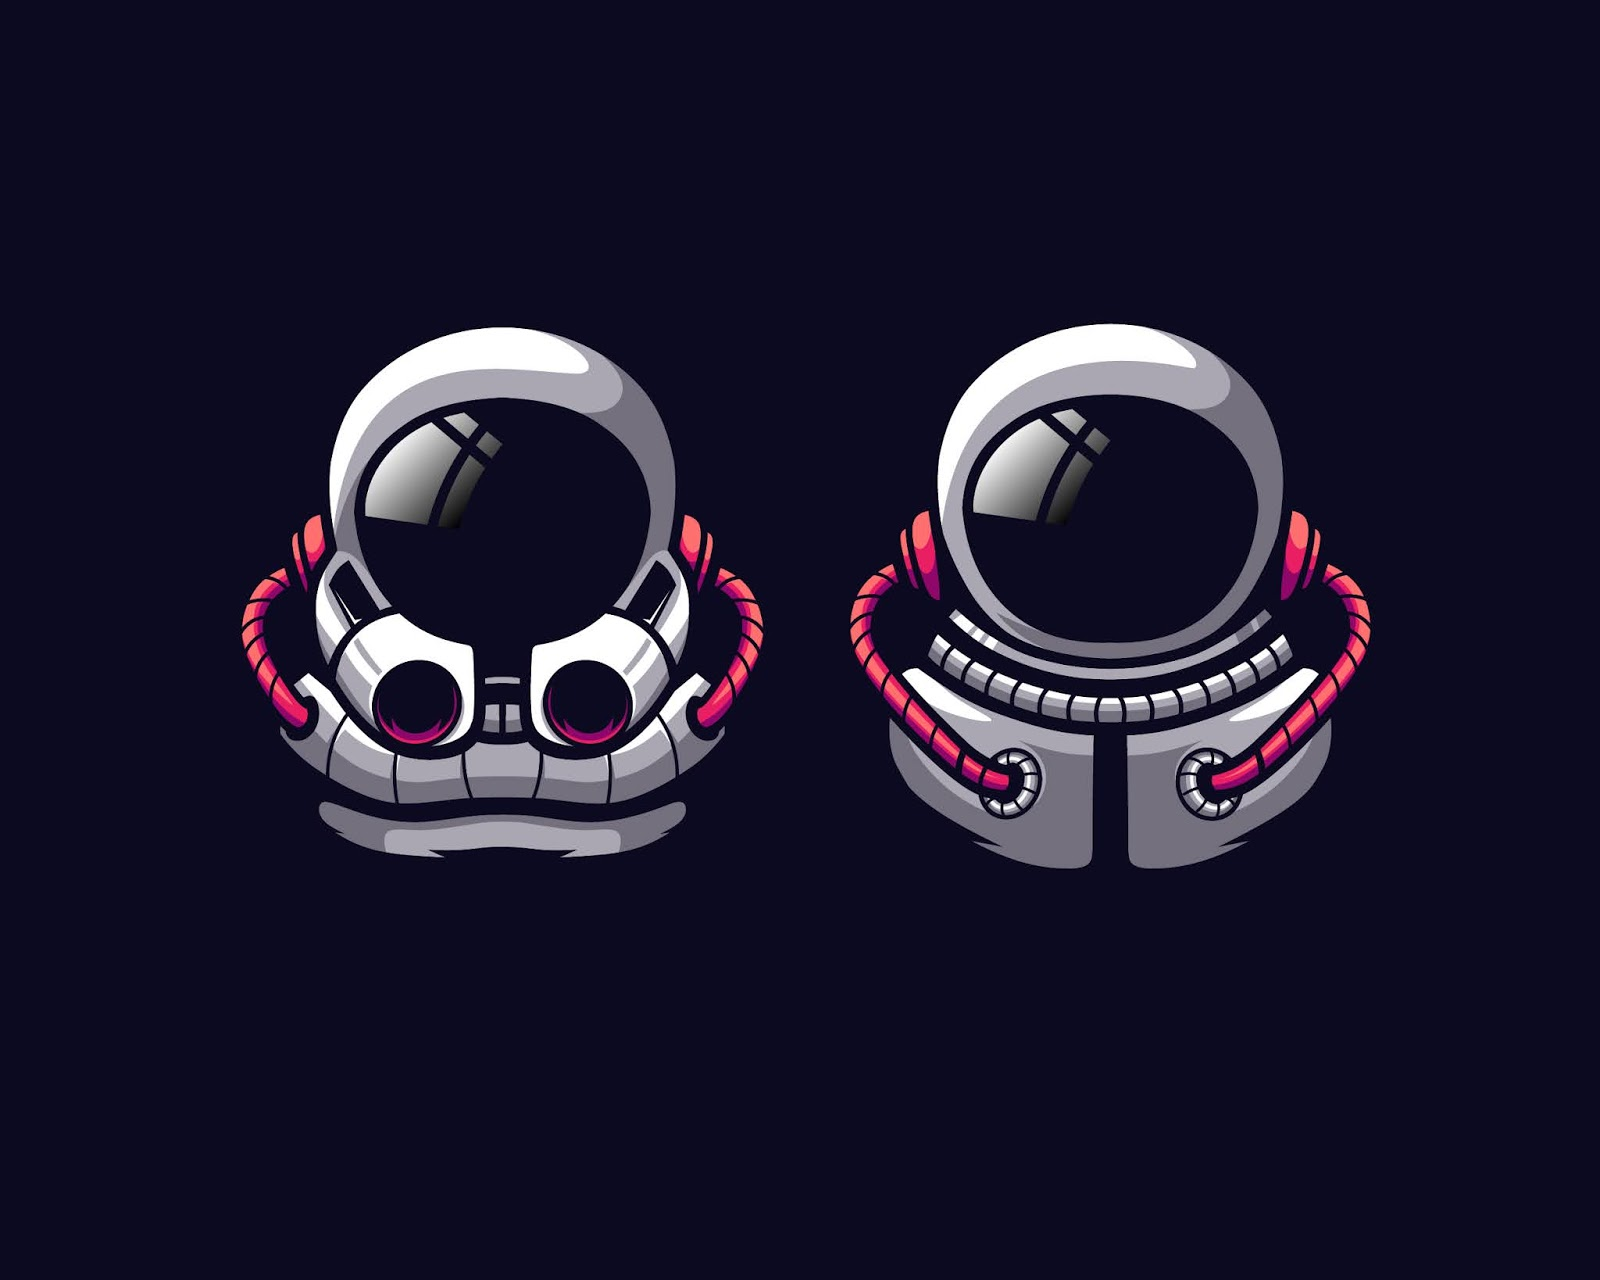 Awesome Astronaut Vector Illustration Free Download Vector CDR, AI, EPS and PNG Formats